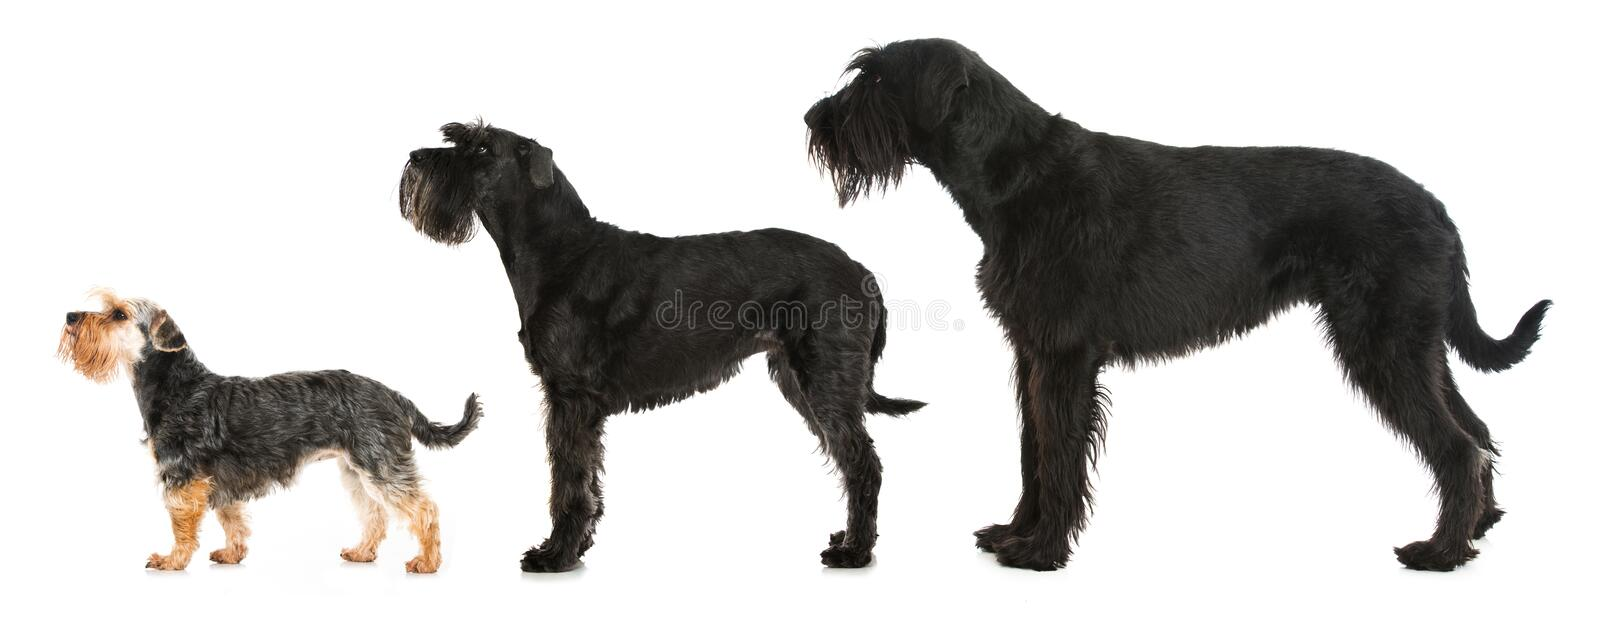 Three schnauzer dog isolated on white background. Three schnauzer dog behind each other isolated on white background stock photo